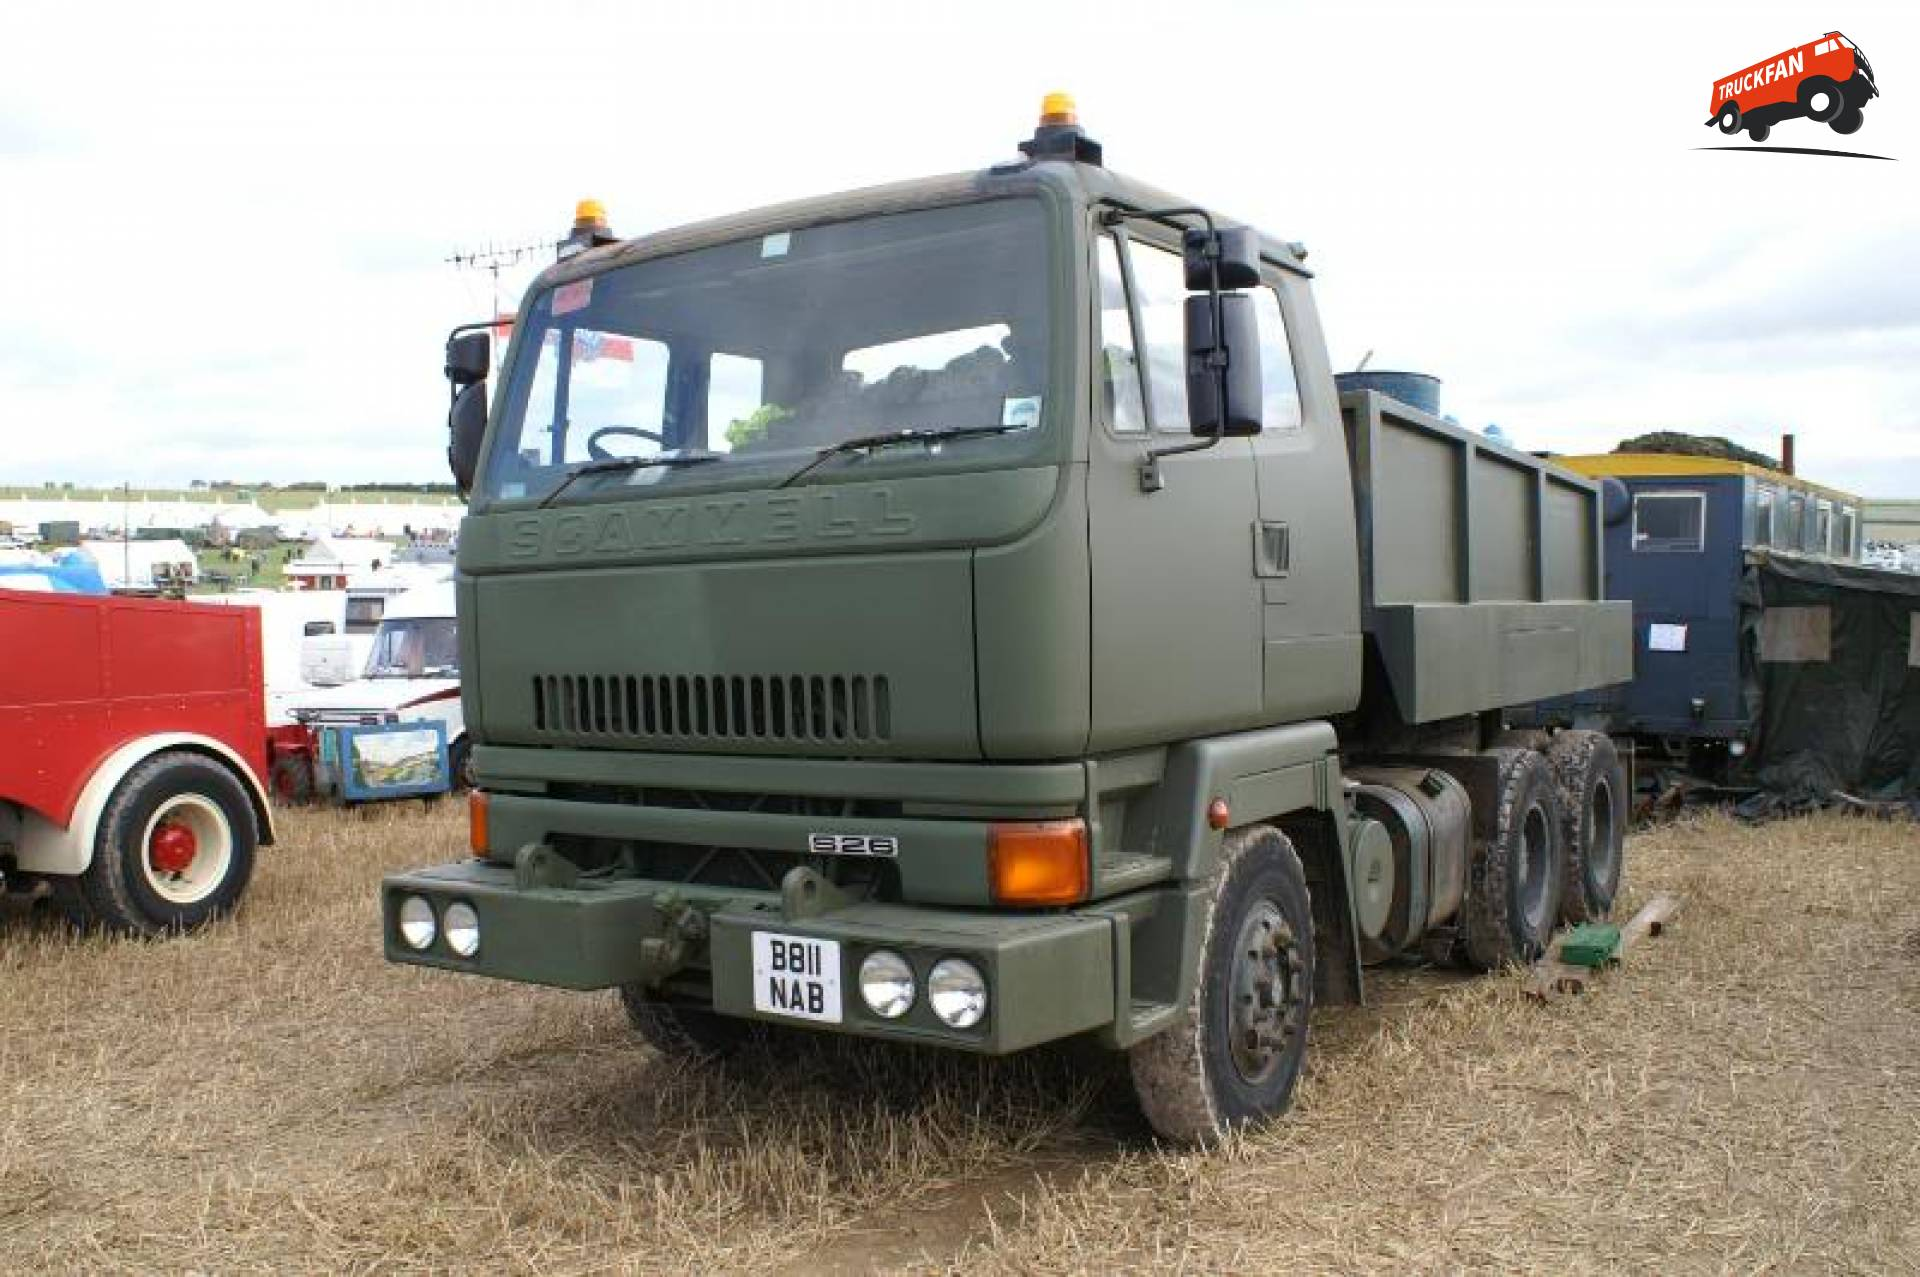 Scammell s26 photo - 2